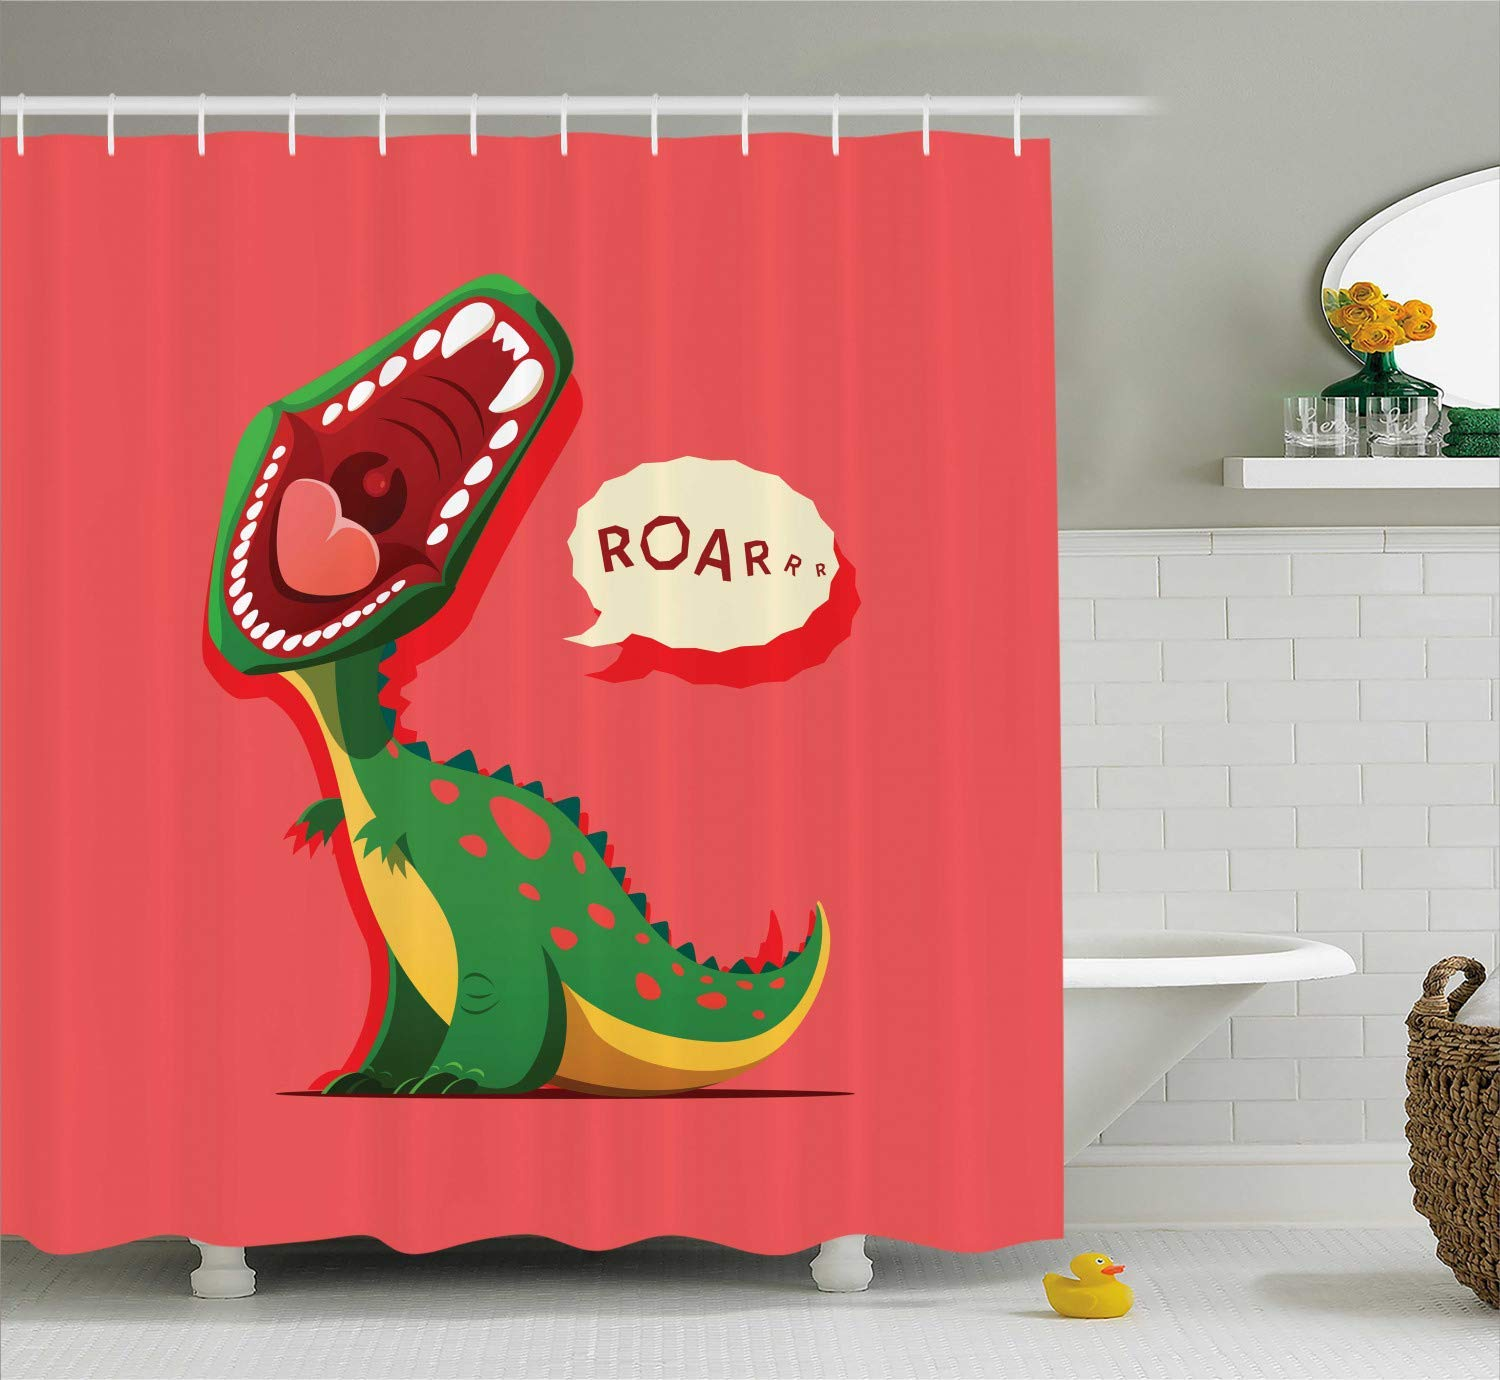 DIY Dinosaur Shower Curtain, Aggressive Prehistoric Cartoon Animal Roaring Open Mouth Wildlife Image, Fabric Polyester Waterproof 12 Stainless Steel Hook, 72 x 84 Inches Coral Green